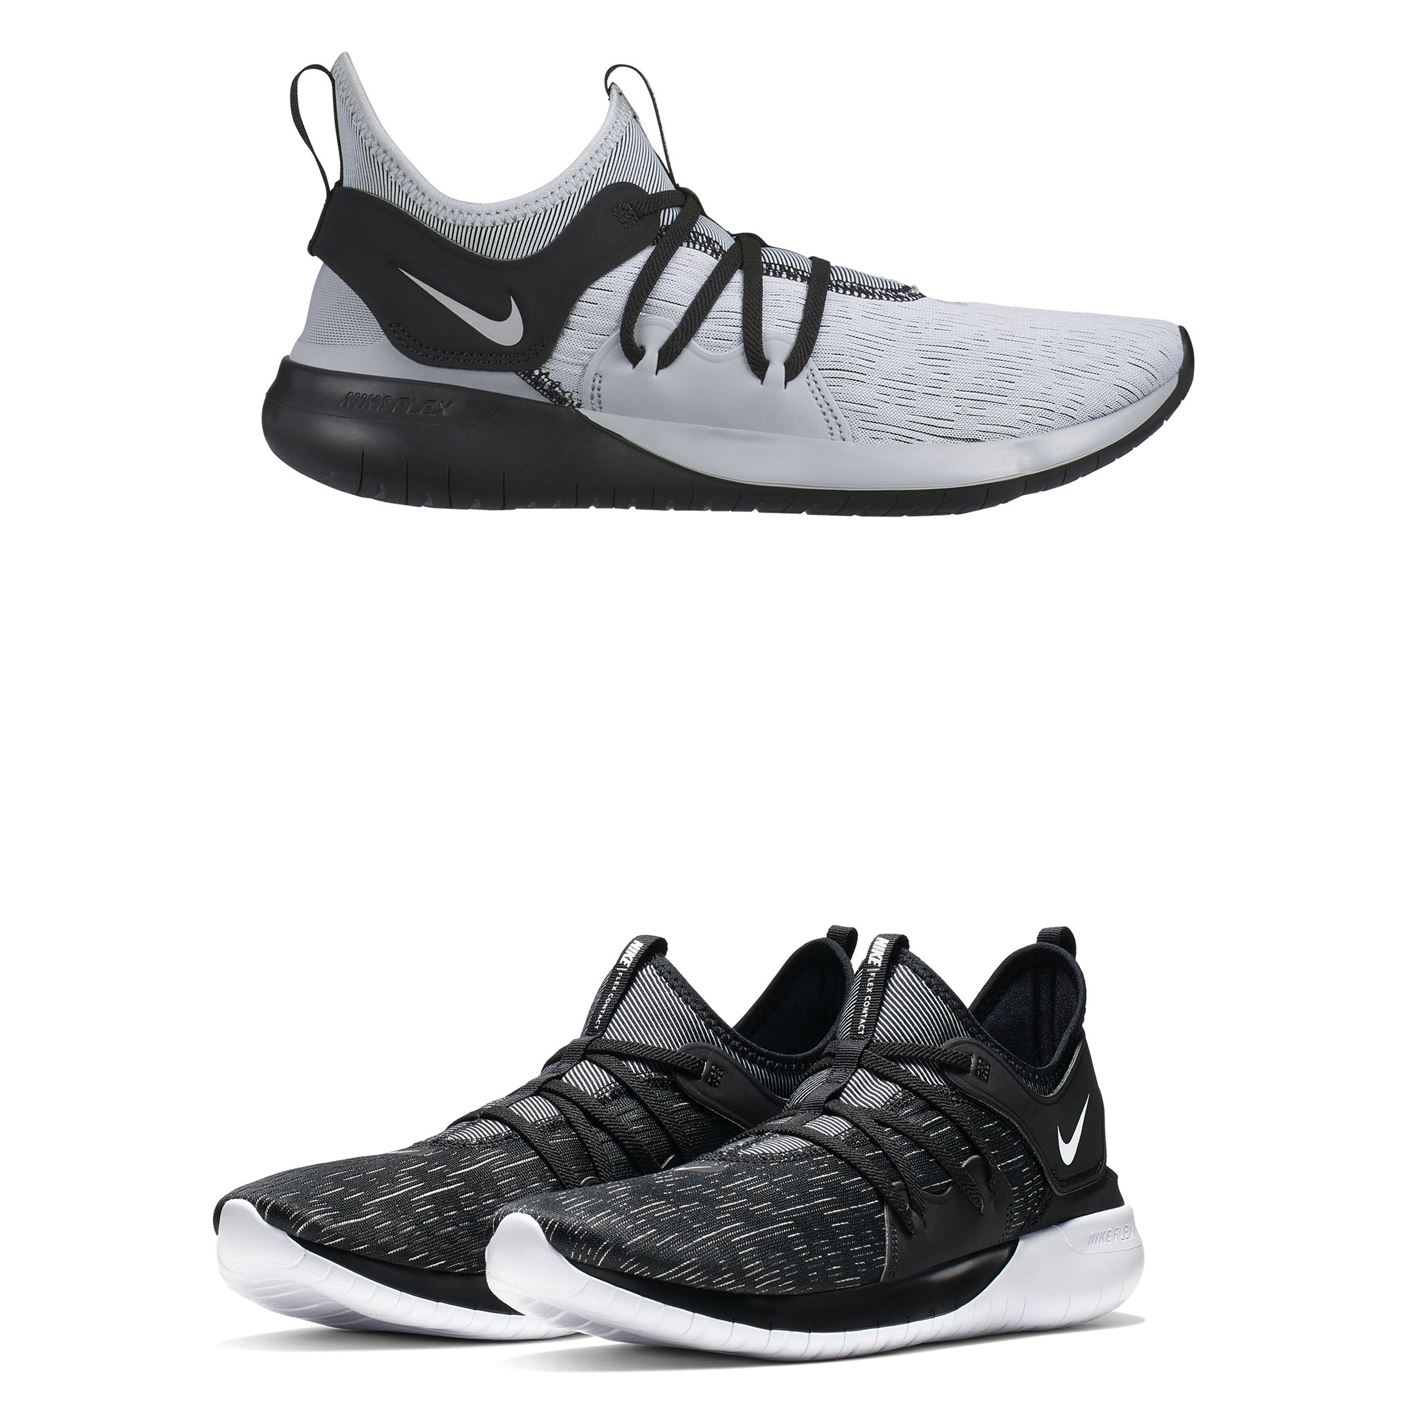 Details about Nike Flex Contact 3 Mens Trainers Shoes Running Footwear Sneakers